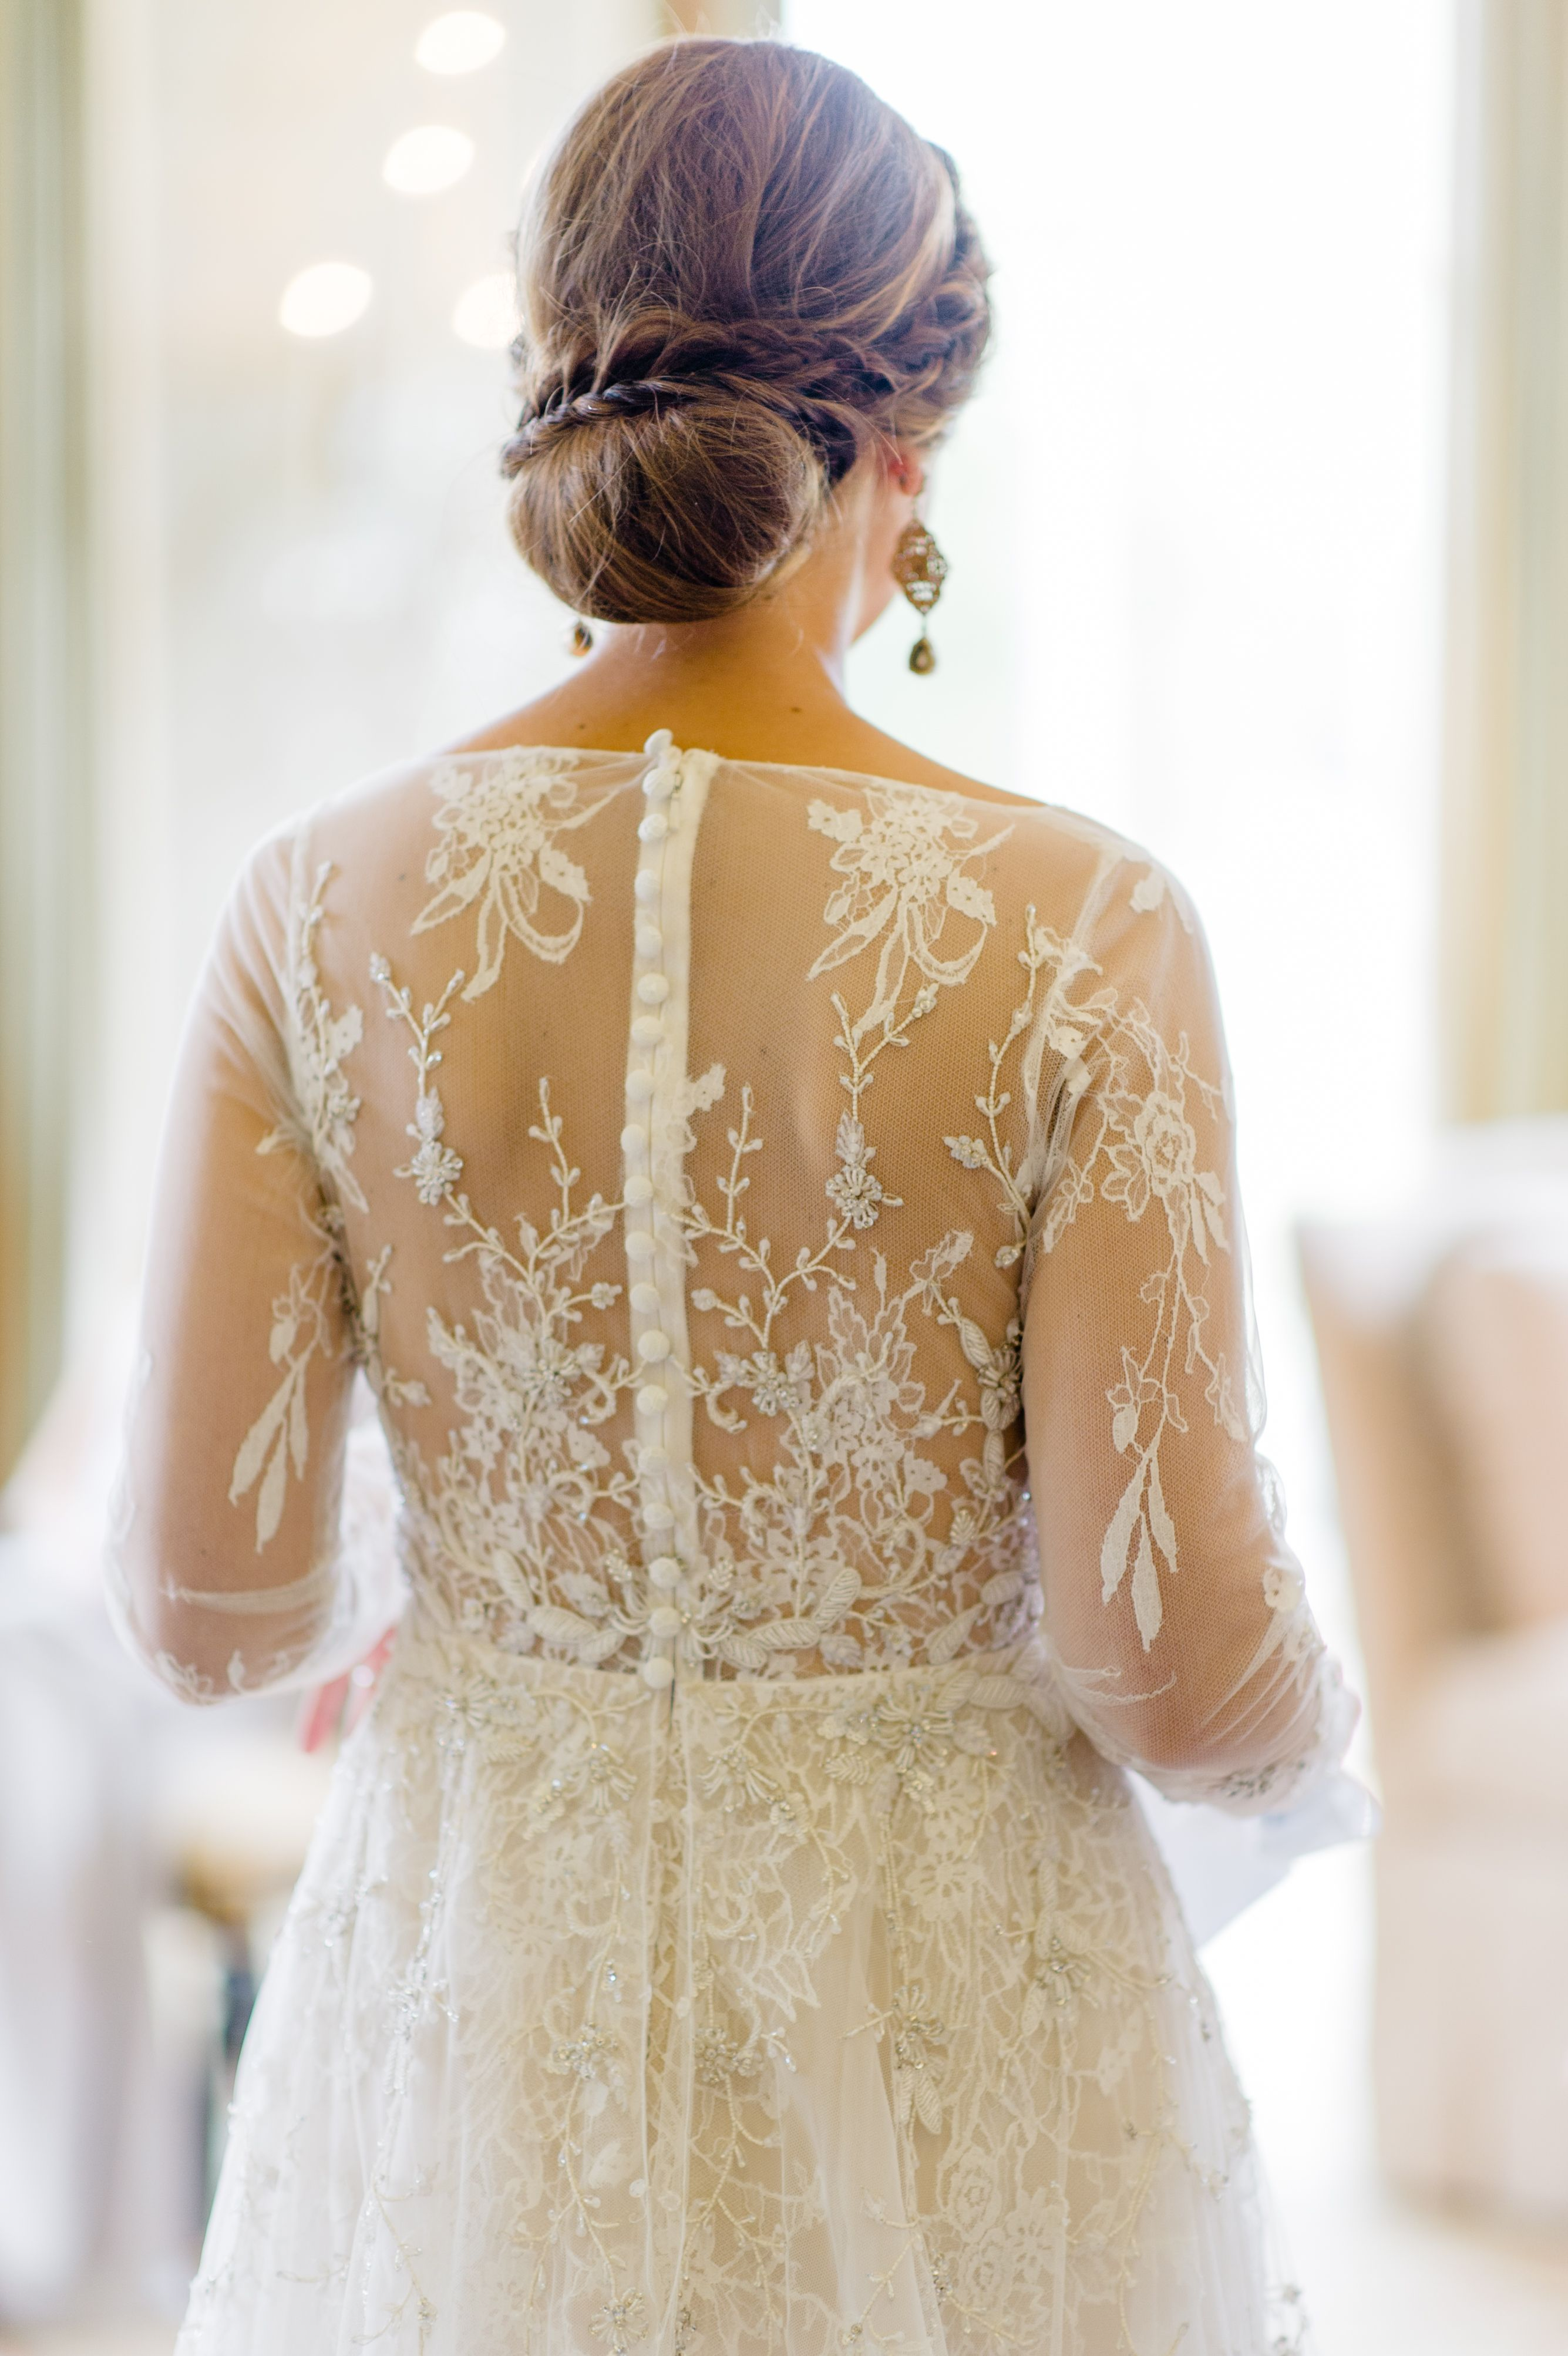 An elegantly romantic updo hairstyle for the bride with a braided